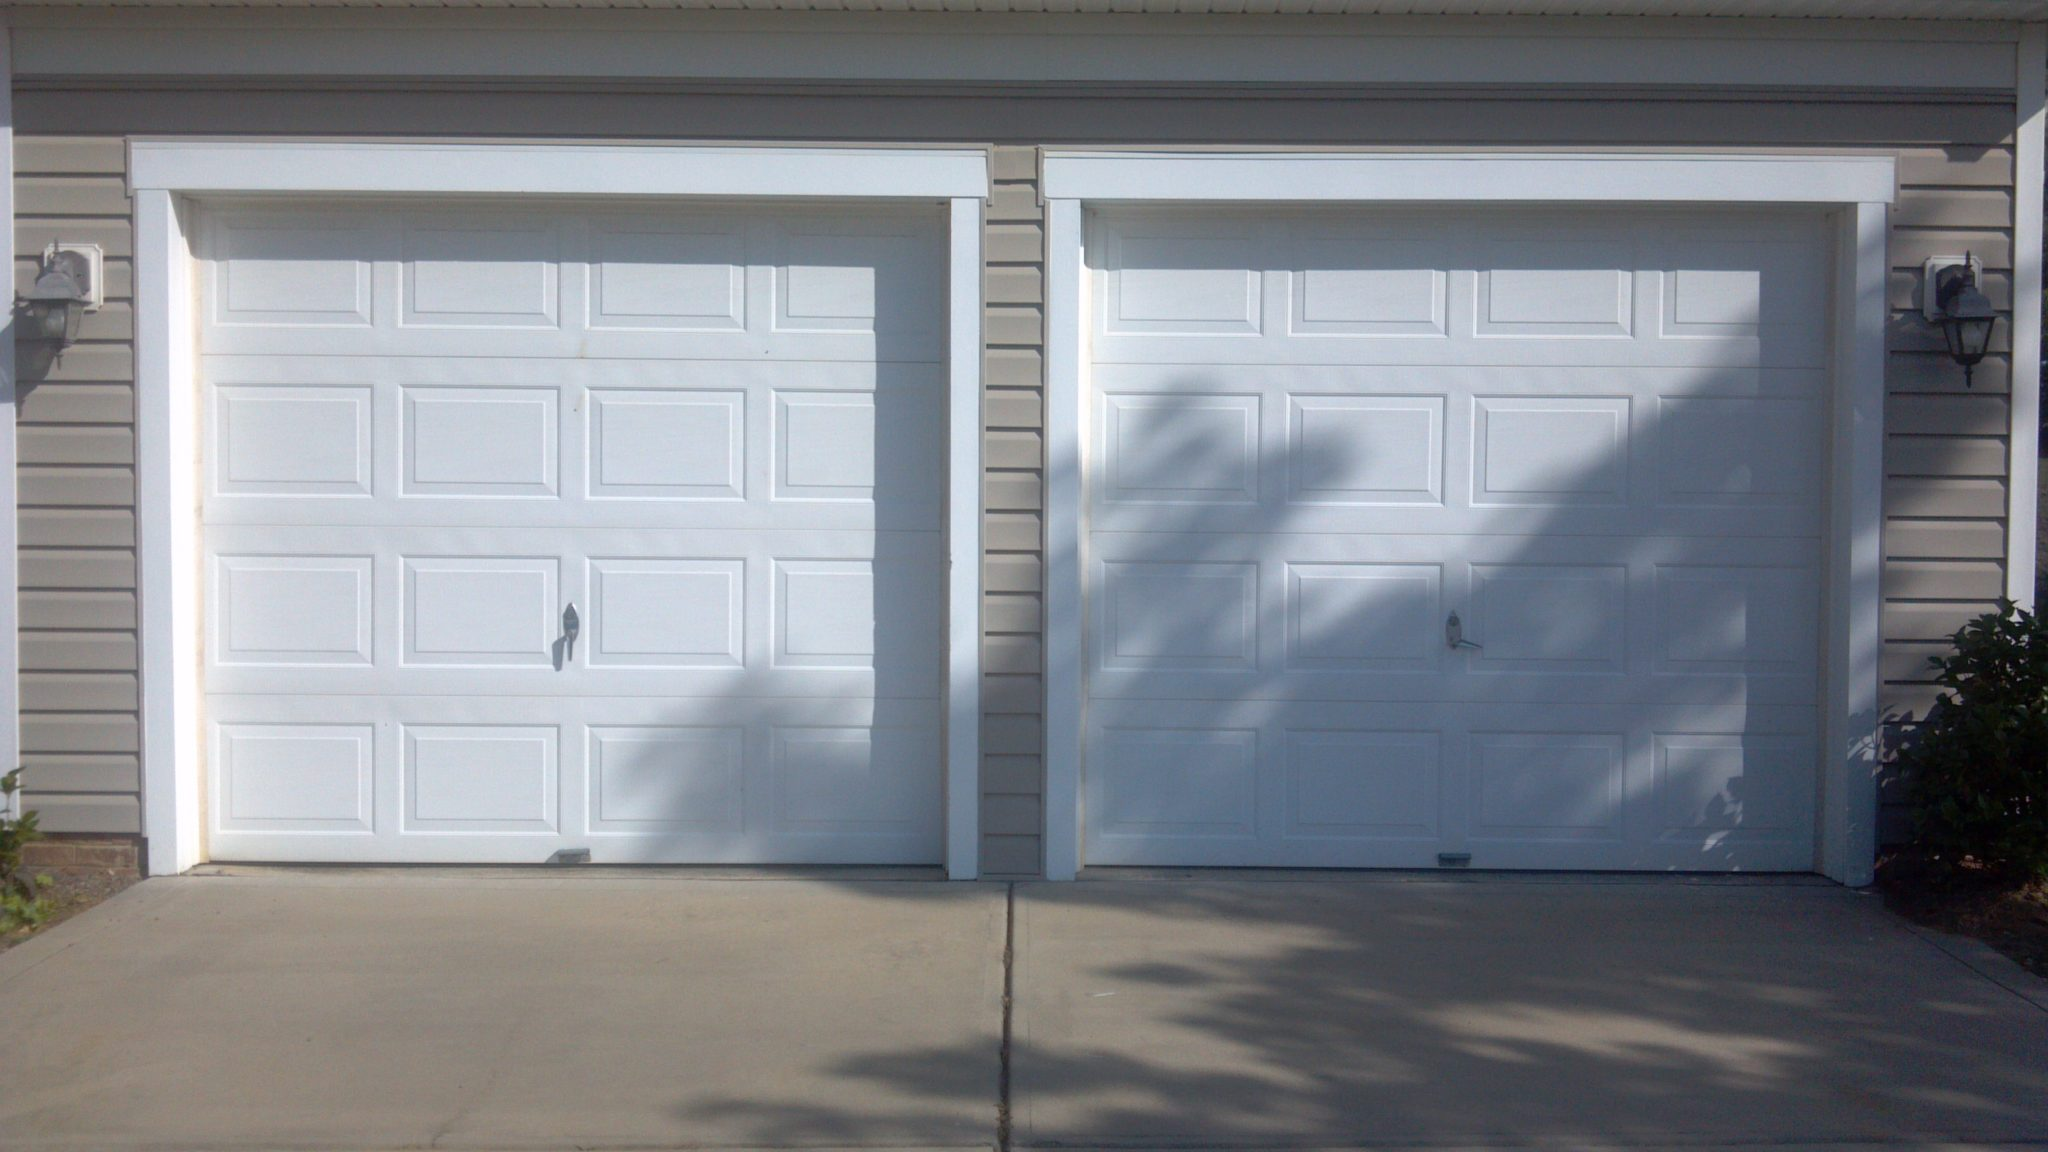 1836 #556276 Single Garage Doors Two Single Garage Doors Before A Plus Garage Doors wallpaper Doors And Garage Doors 37153264